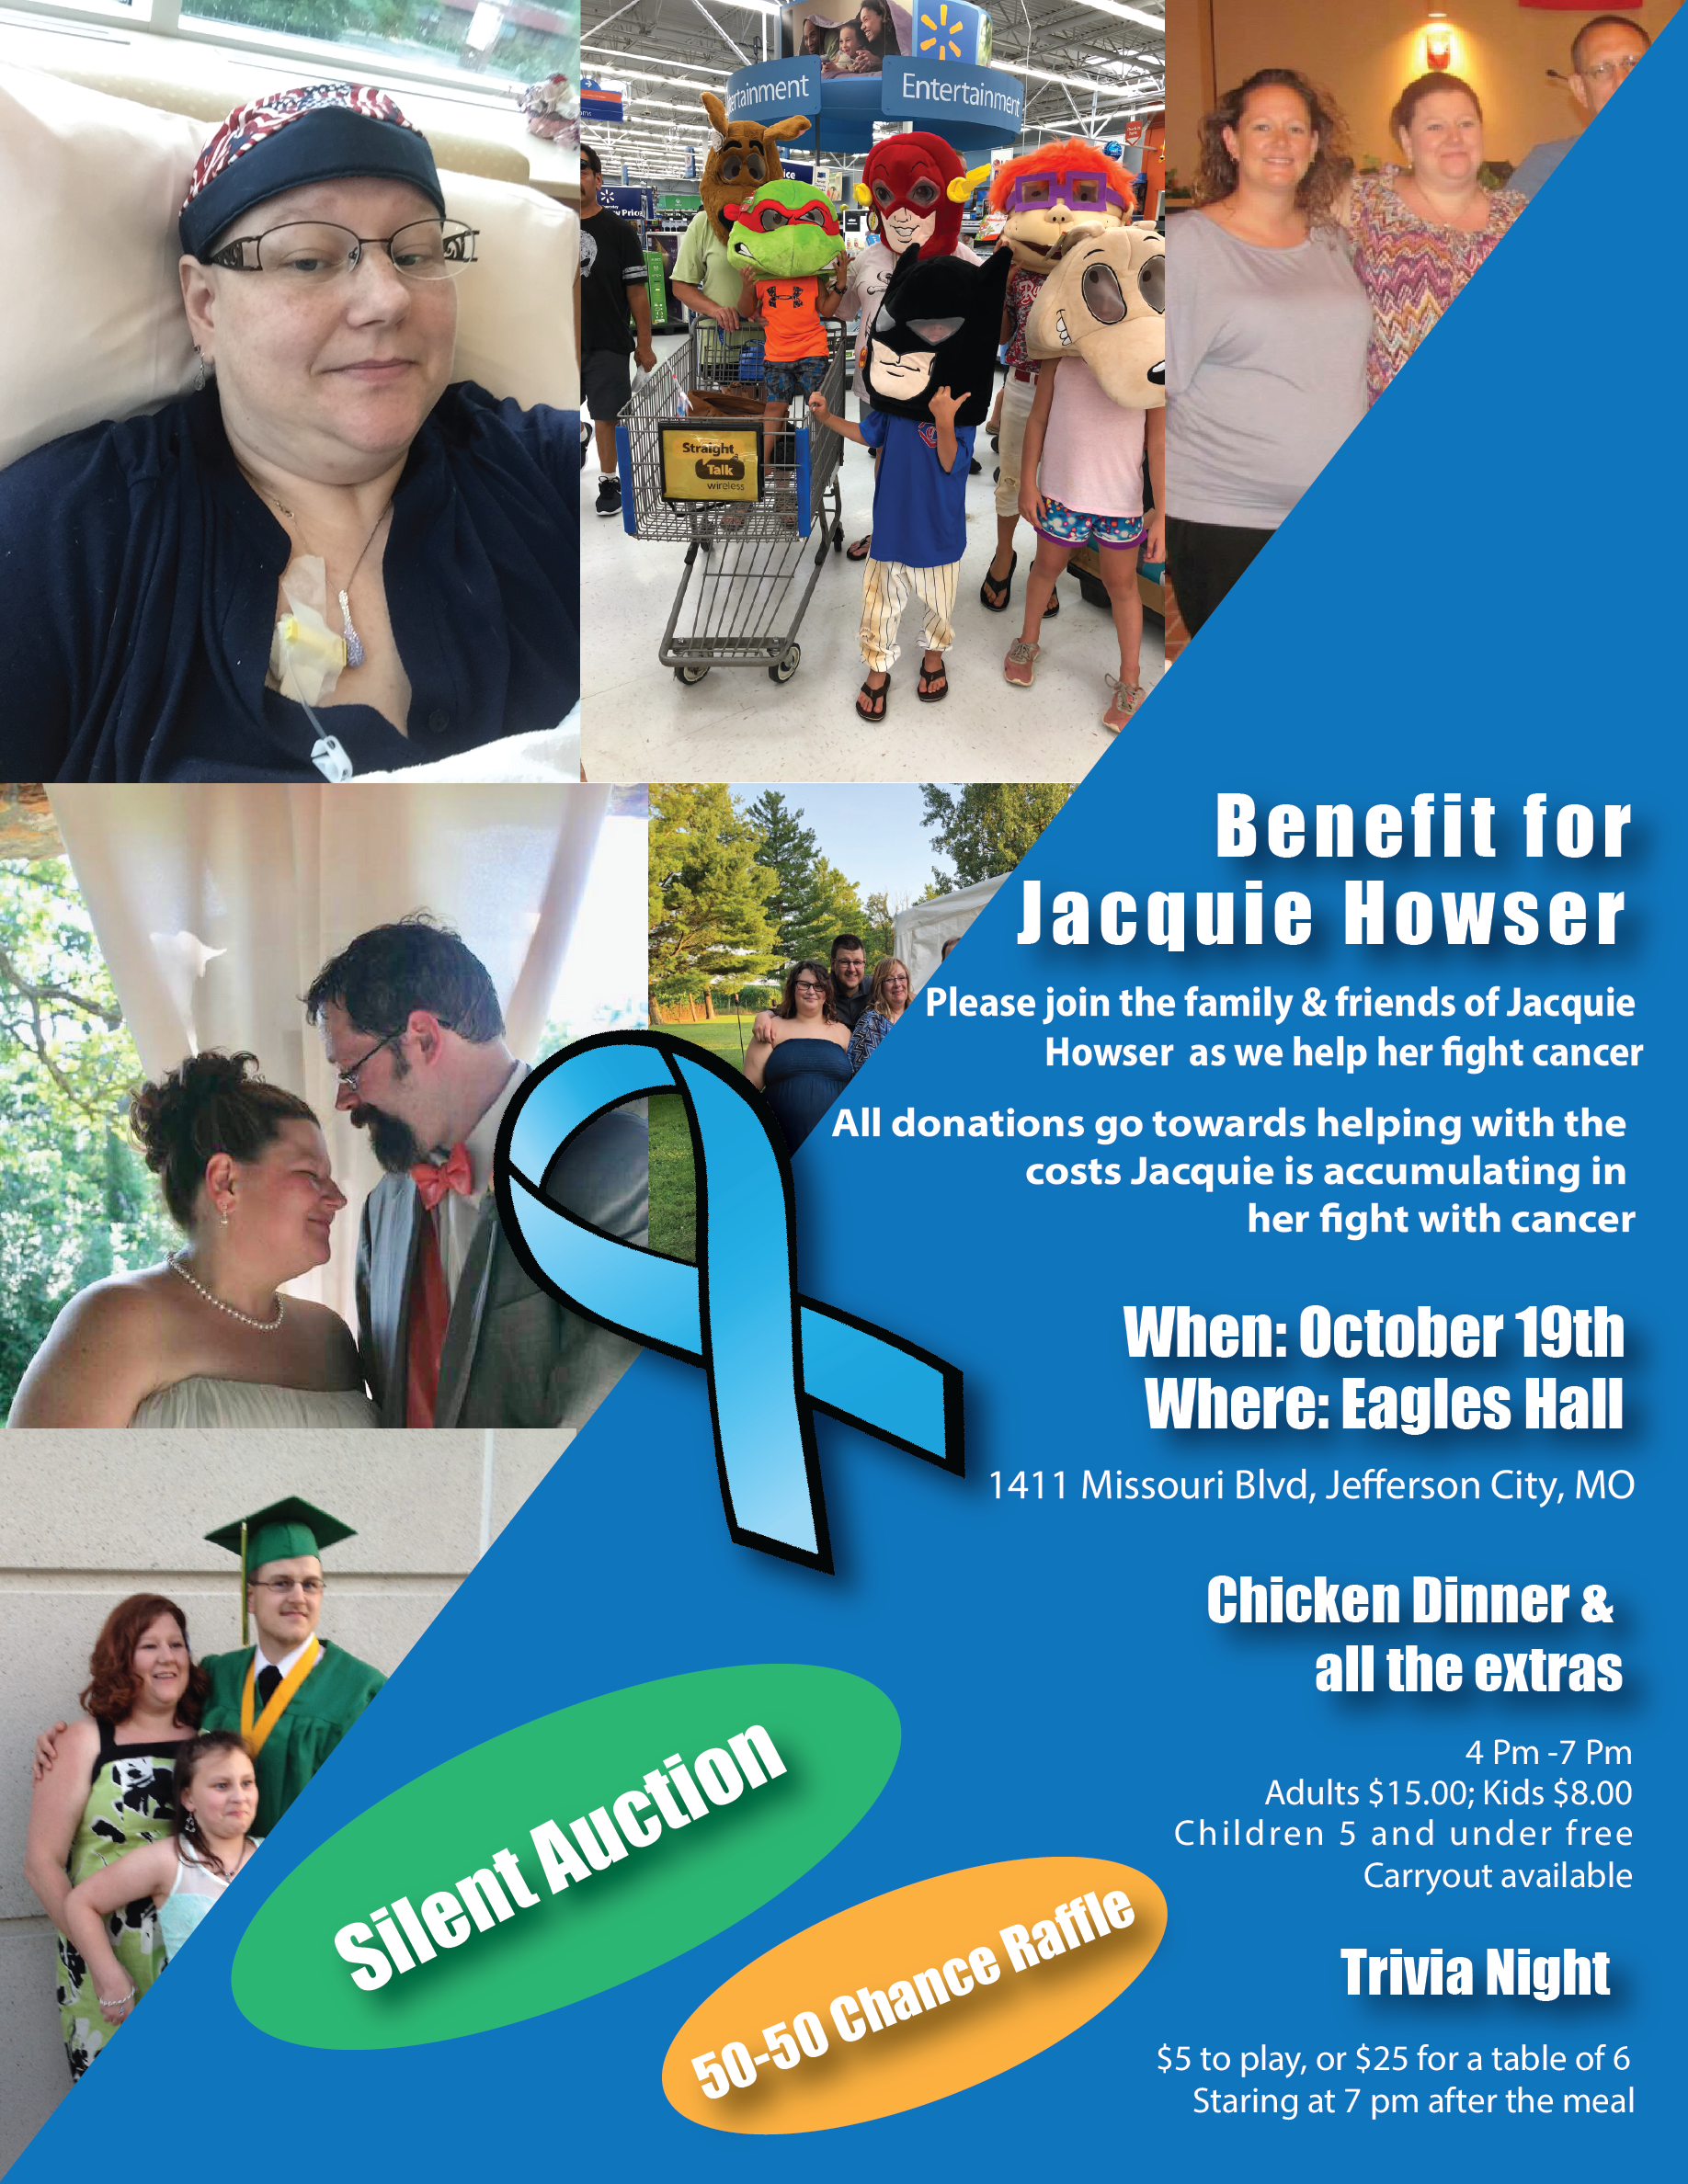 Jacquie Howser Benefit Poster